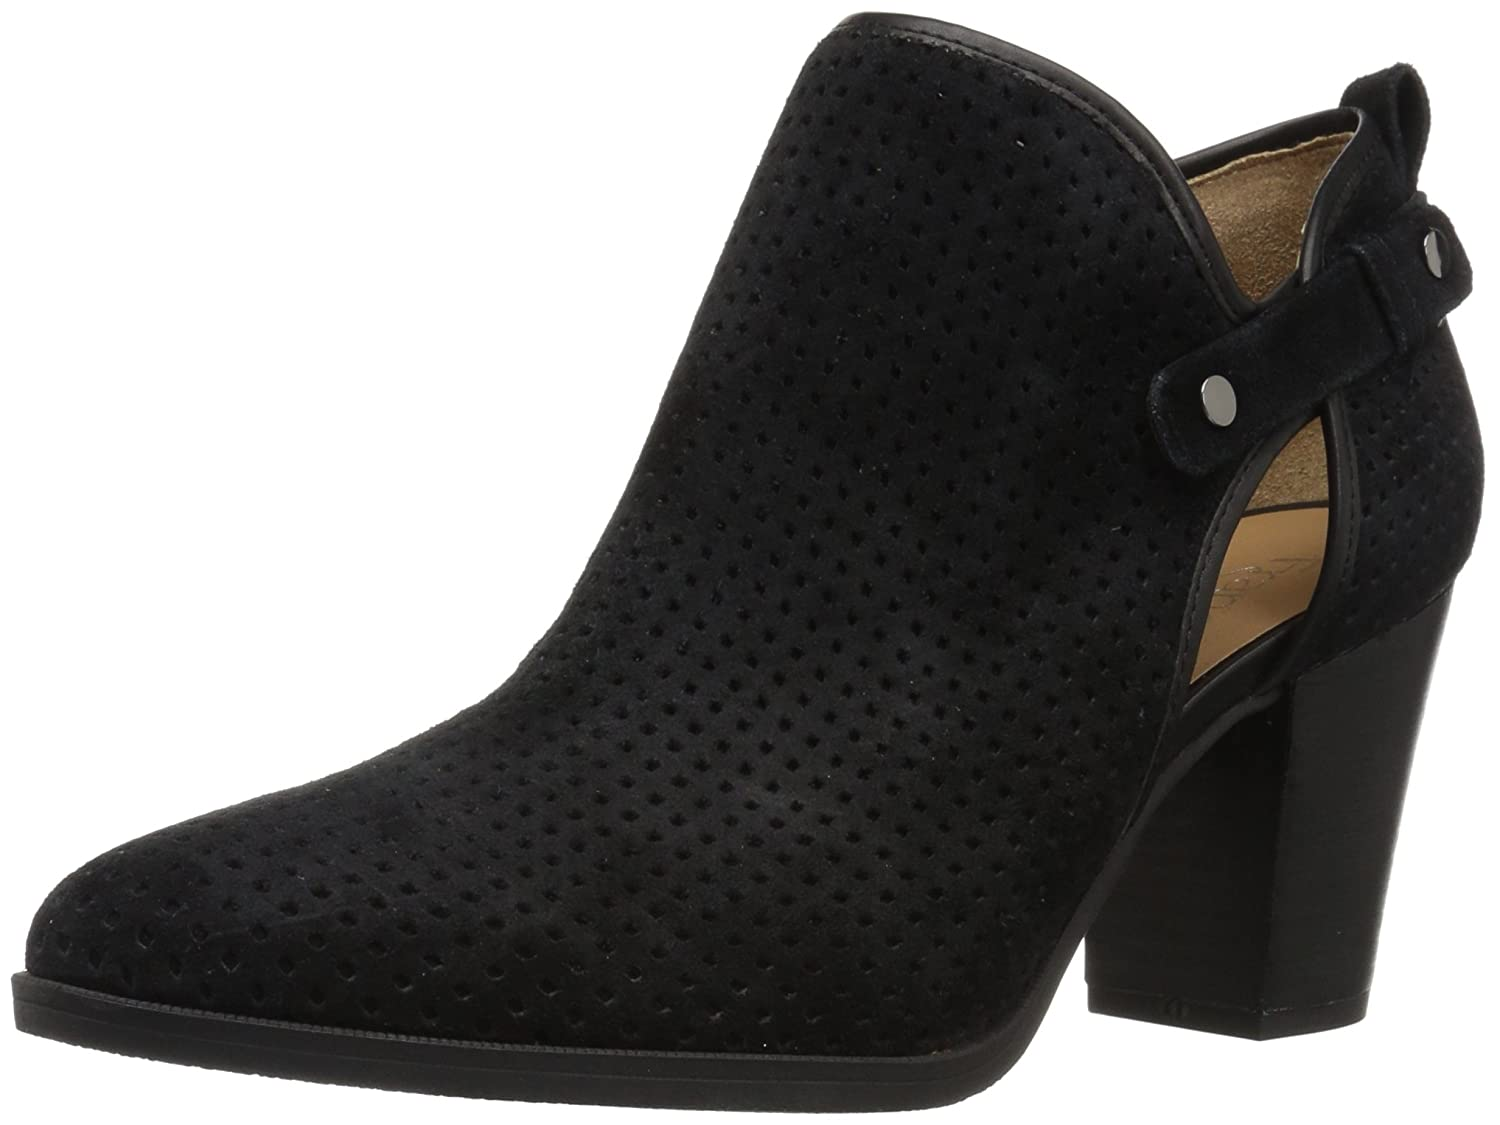 Franco Sarto Women's Dakota Ankle Boot B073YCVZR2 7 B(M) US|Black